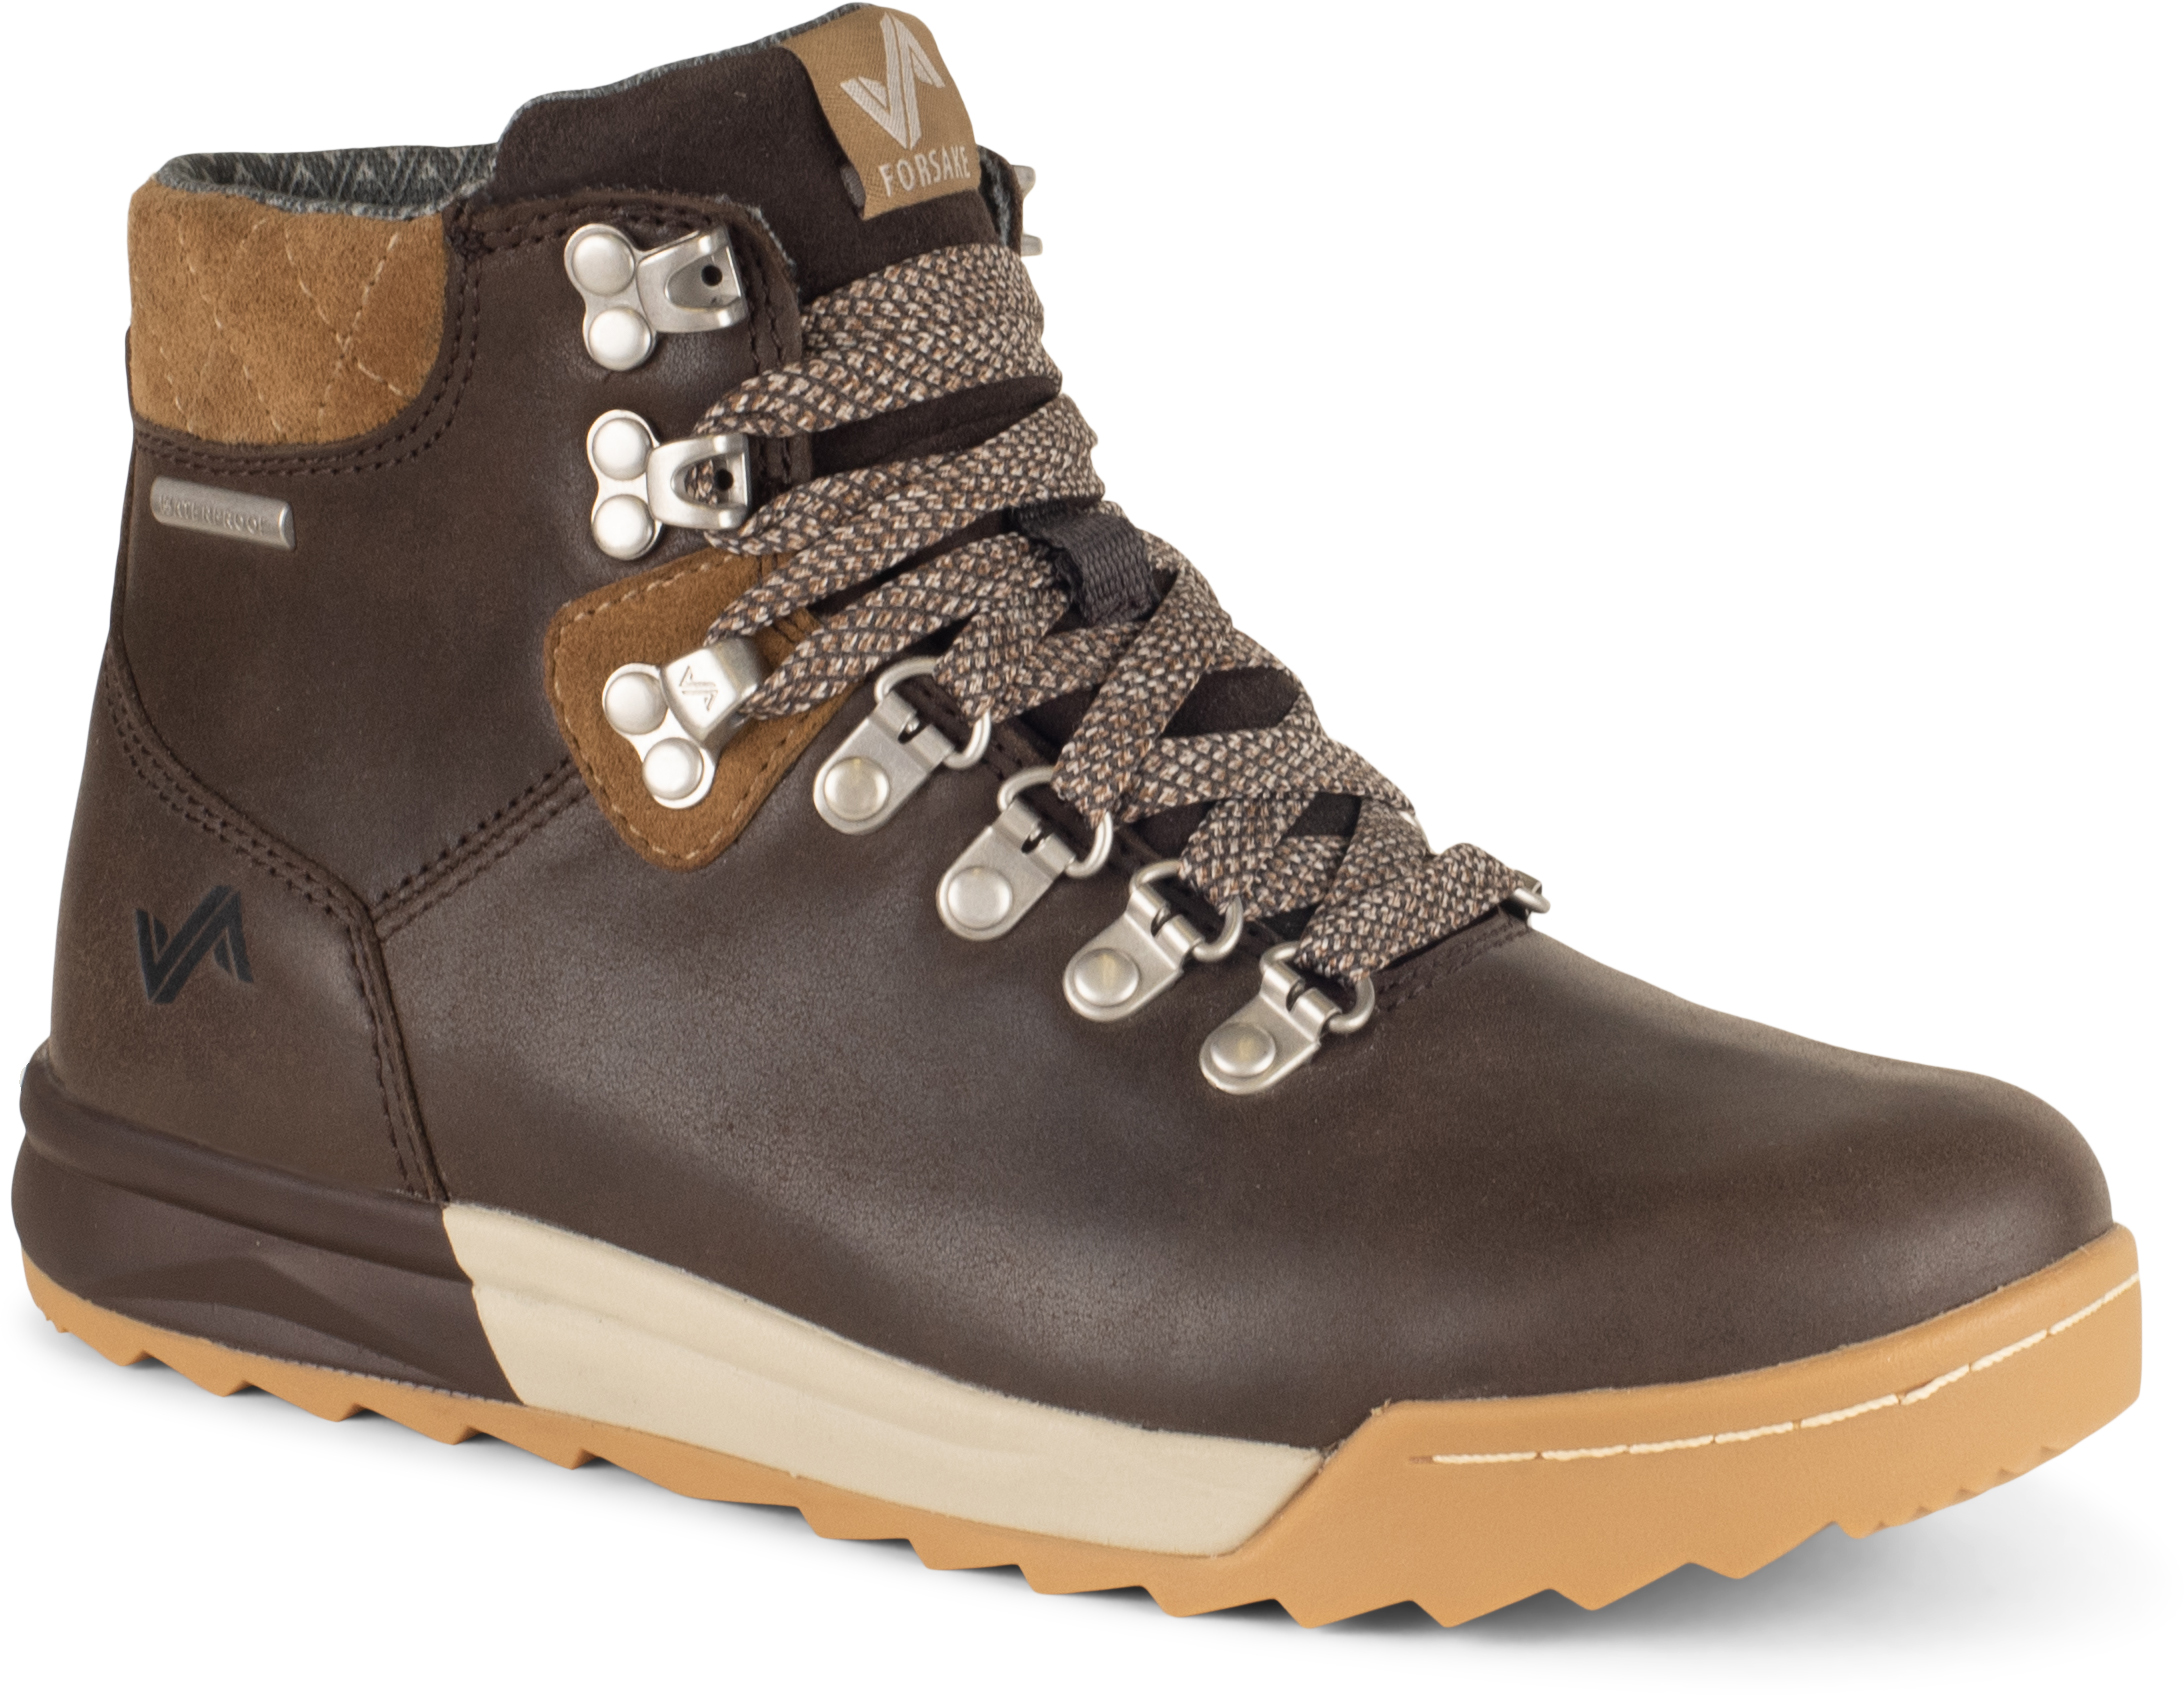 c97aaf358df157 Hiking boots | MEC